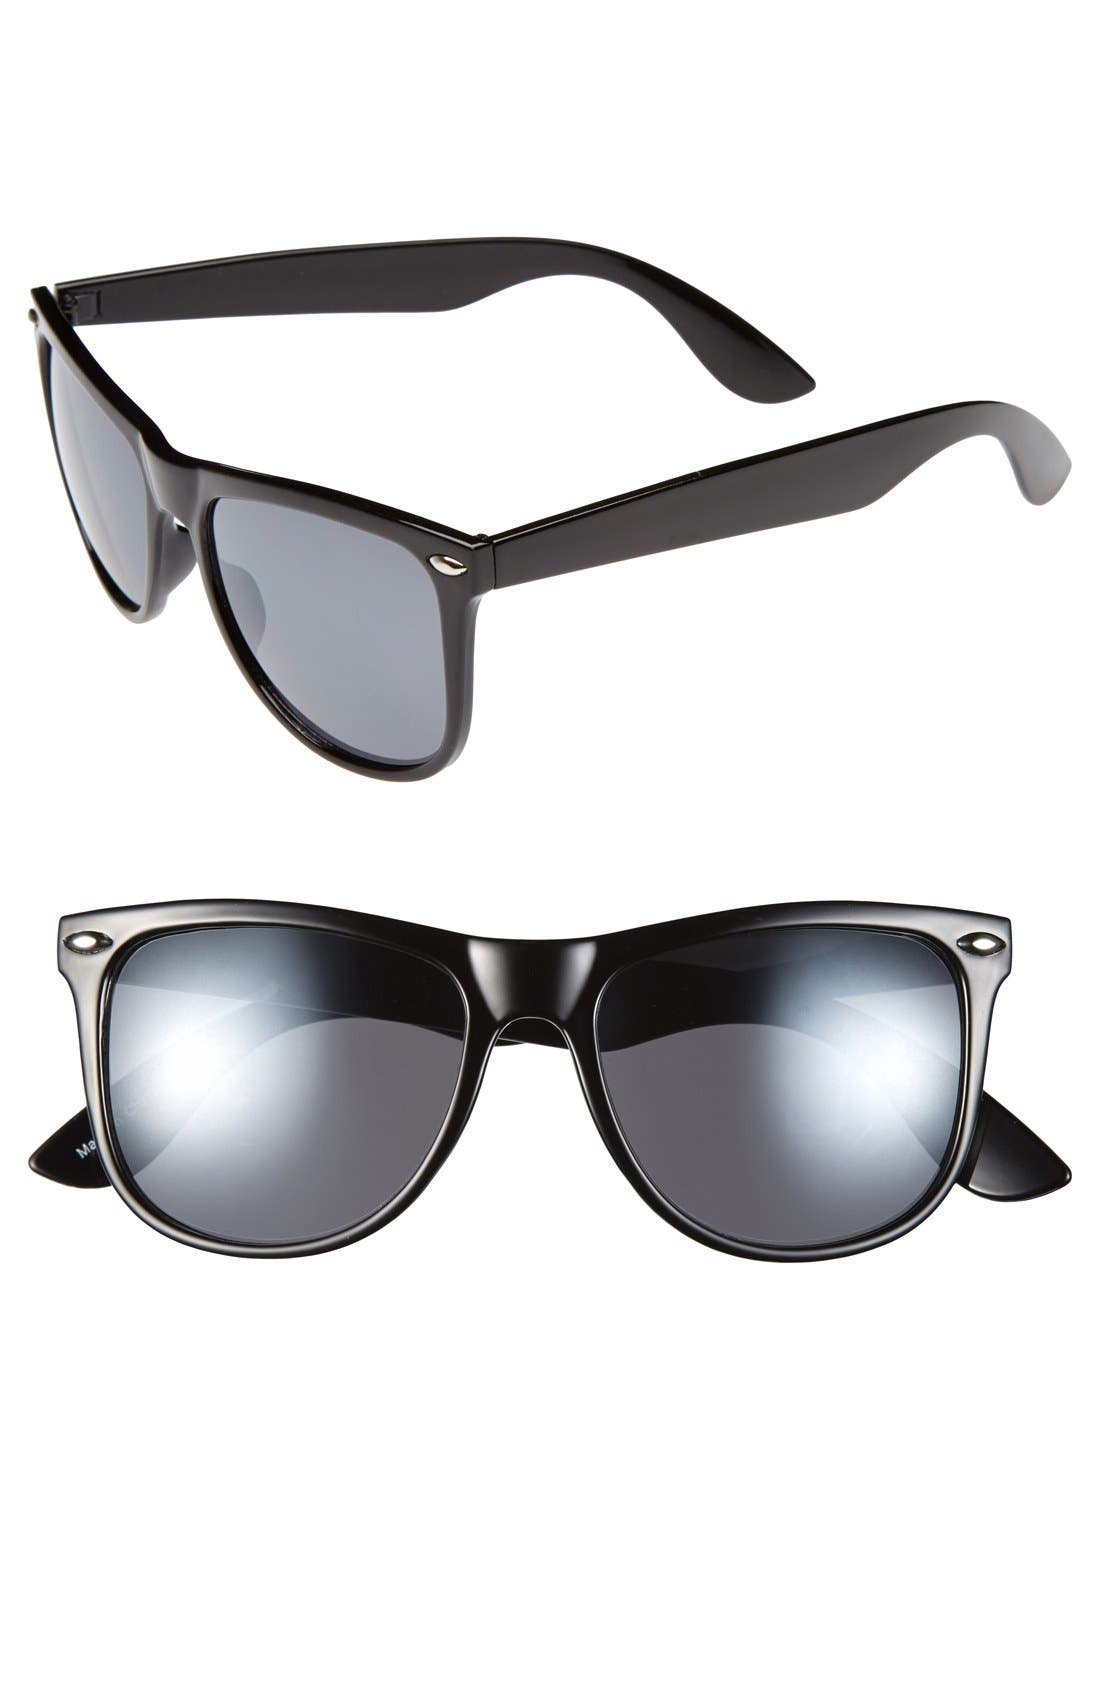 Main Image - Fantas Eyes 'Gelato' 53mm Retro Sunglasses (Juniors)